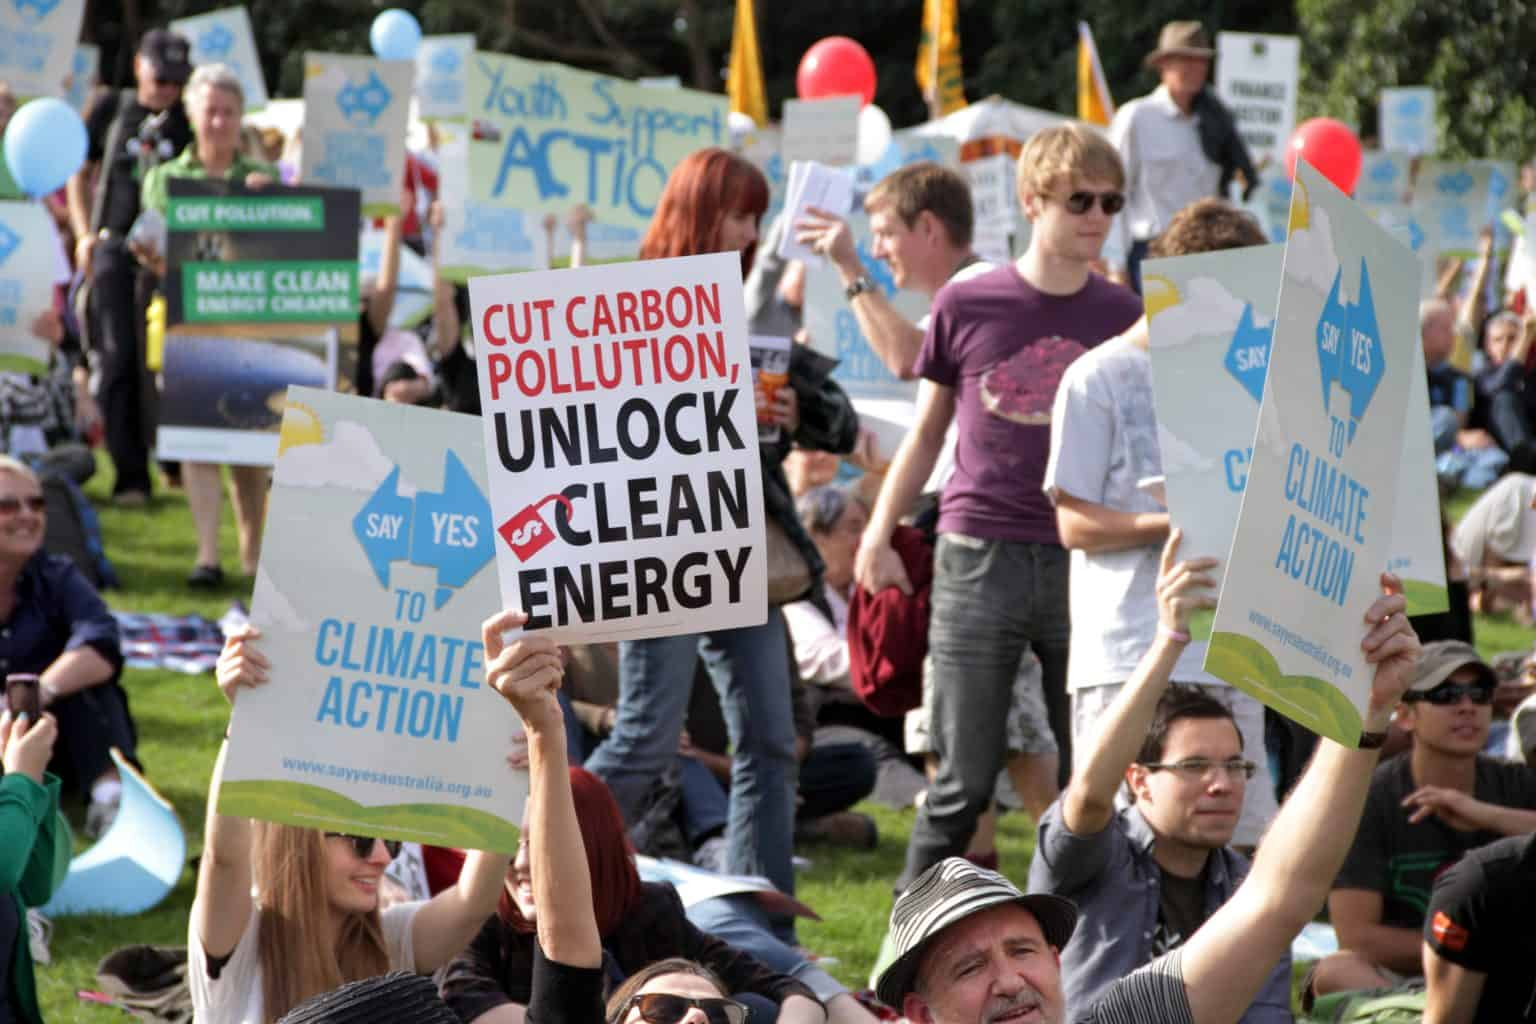 climate change activists protesting for climate change action